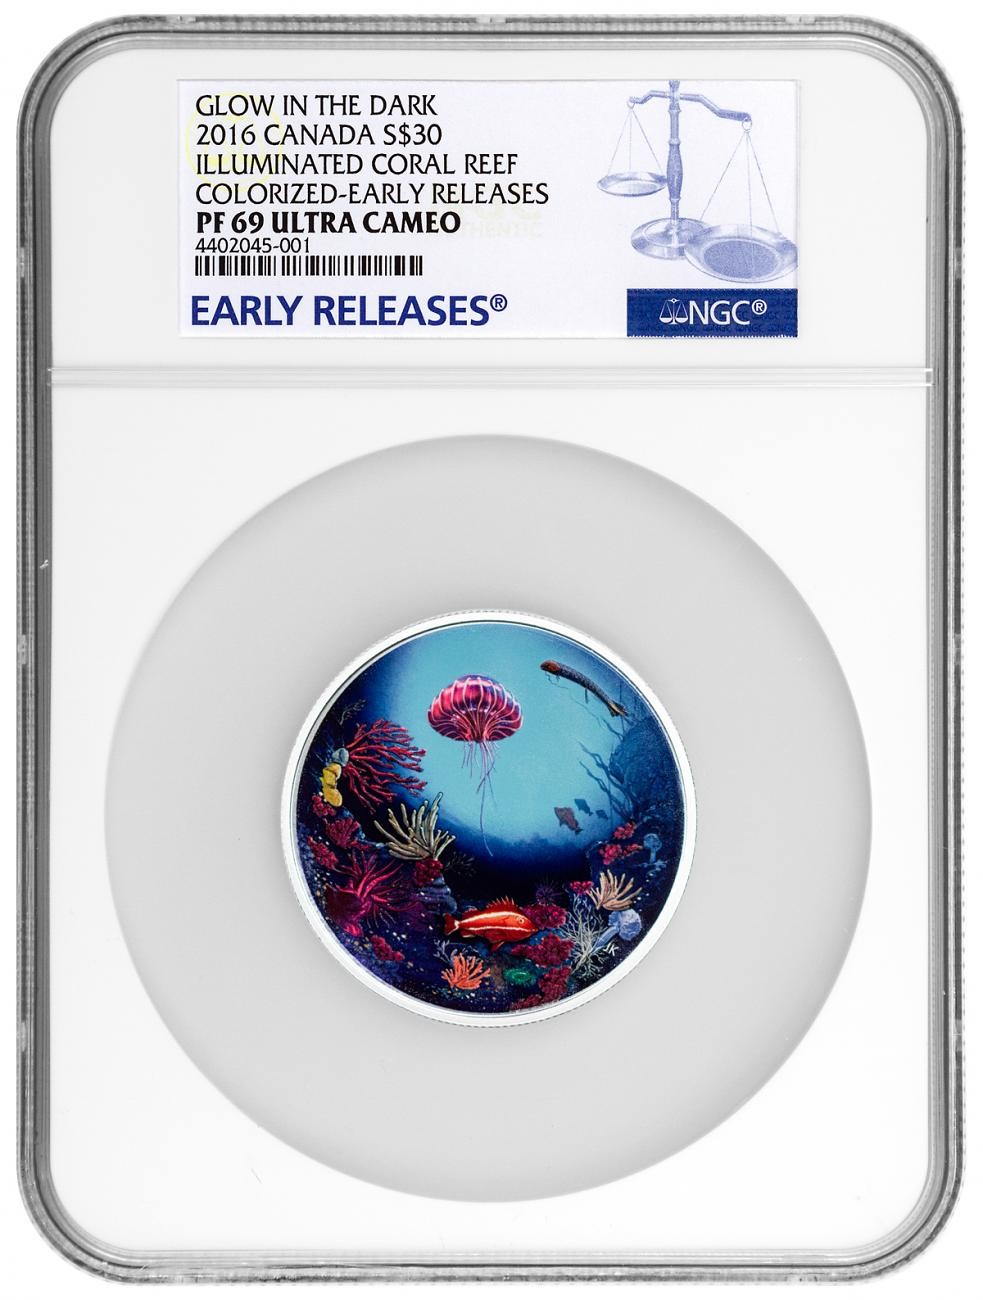 2016 Canada Glow in the Dark - Illuminated Underwater Reef 2 oz Silver Colorized Proof $30 NGC PF69 UC ER